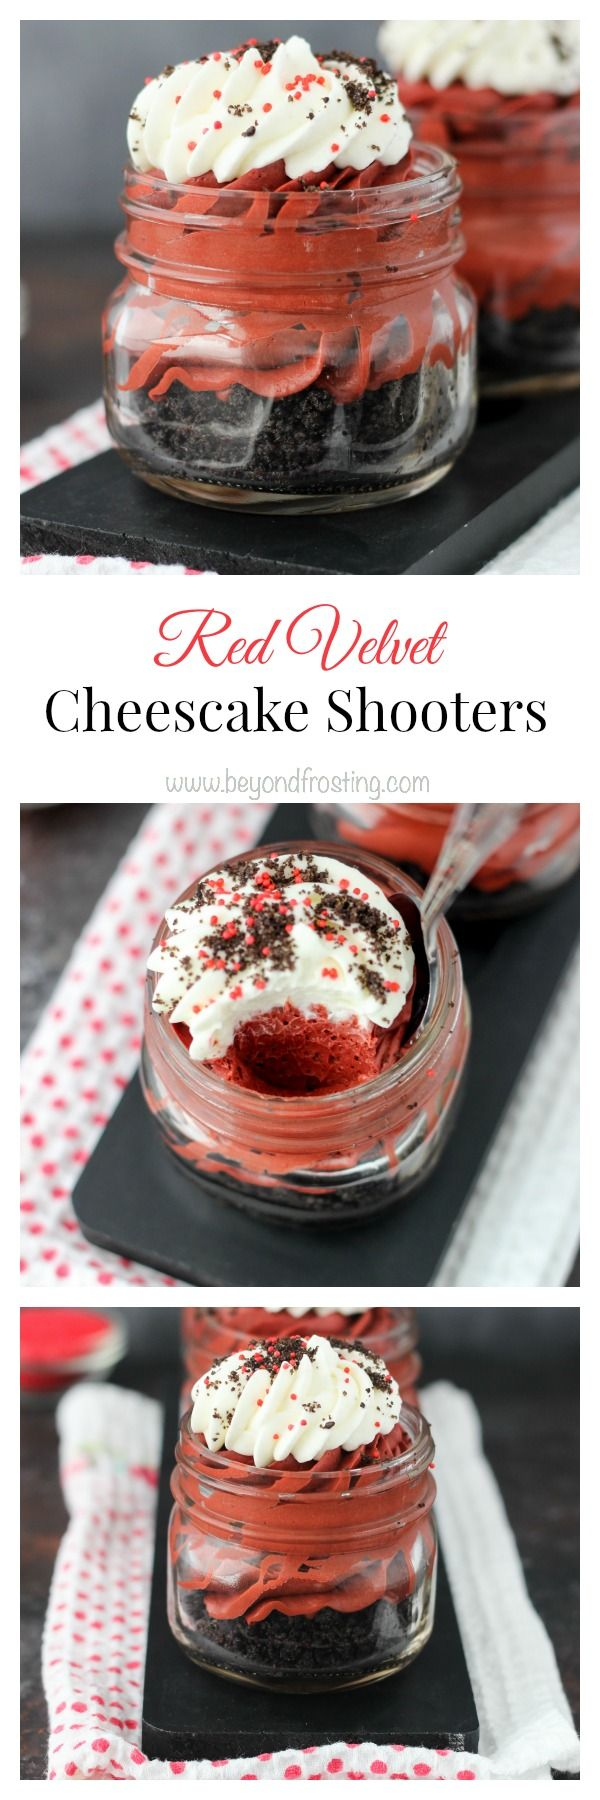 These Red Velvet Cheesecake Shooters have just the right amount of chocolate flavor. On the bottom, you've got a nice thick layer of Oreo cookies. Next, you have a smooth, red velvet no-bake cheesecake filling and it's topped with a hint of whipped cream